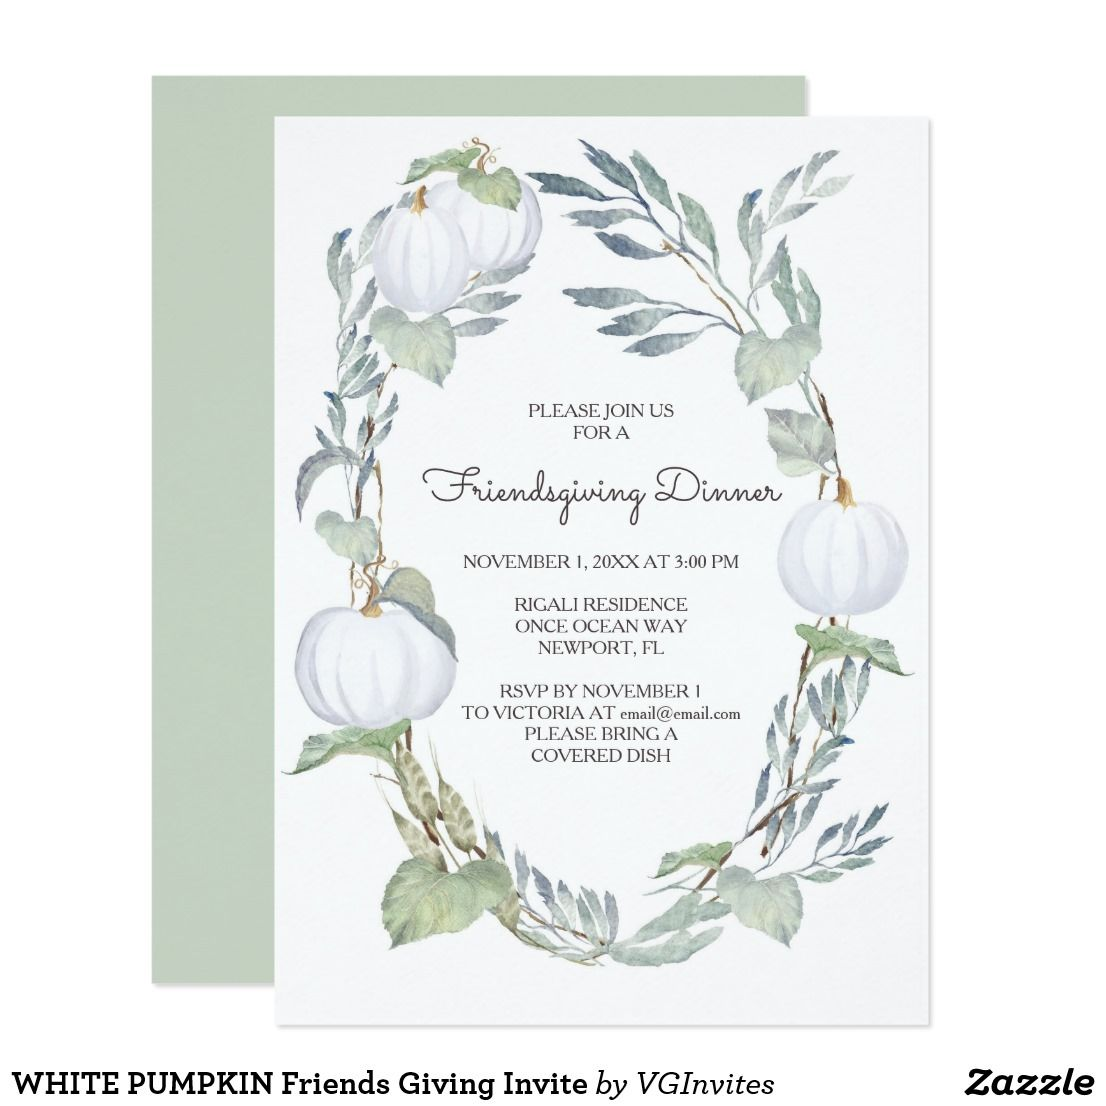 White pumpkin friends giving invite pinterest holiday invitations white pumpkin friends giving invite vg invites white pumpkin and greenery friendsgiving invitation features lush greenery stopboris Images